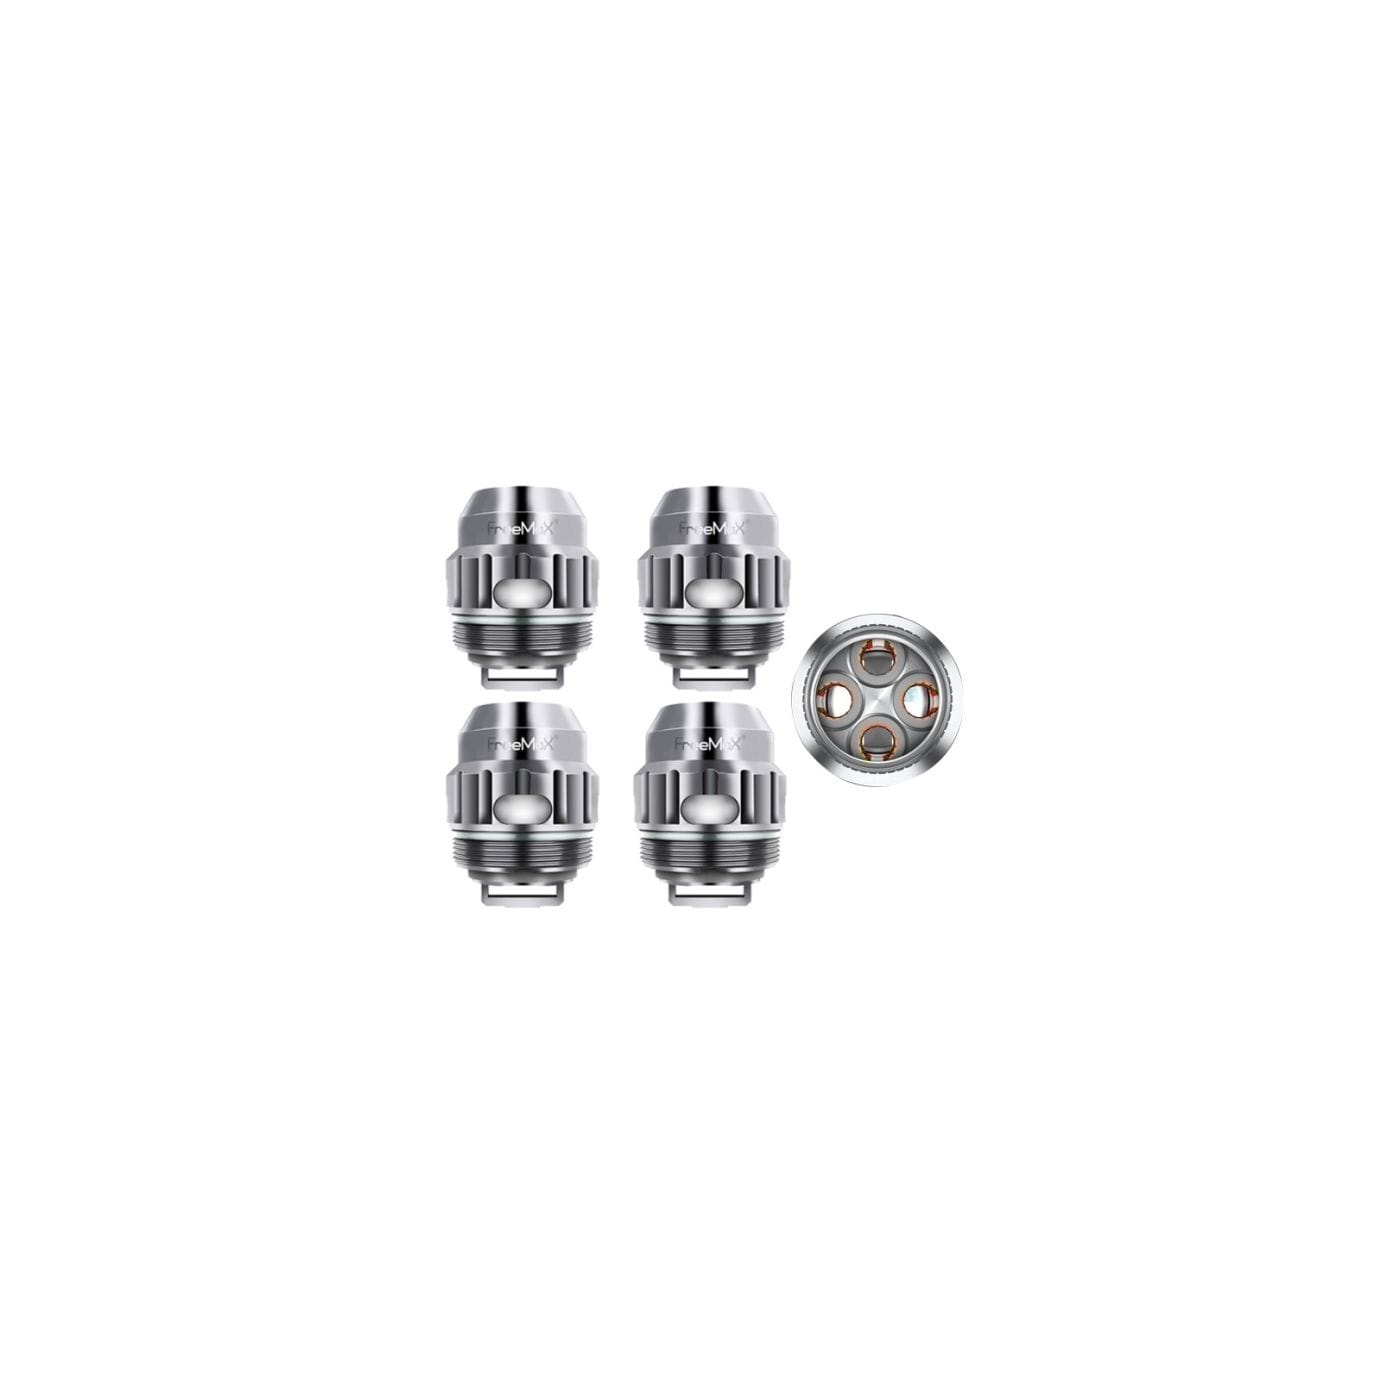 Freemax TX4 Mesh Replacement Coil - 5 Pack